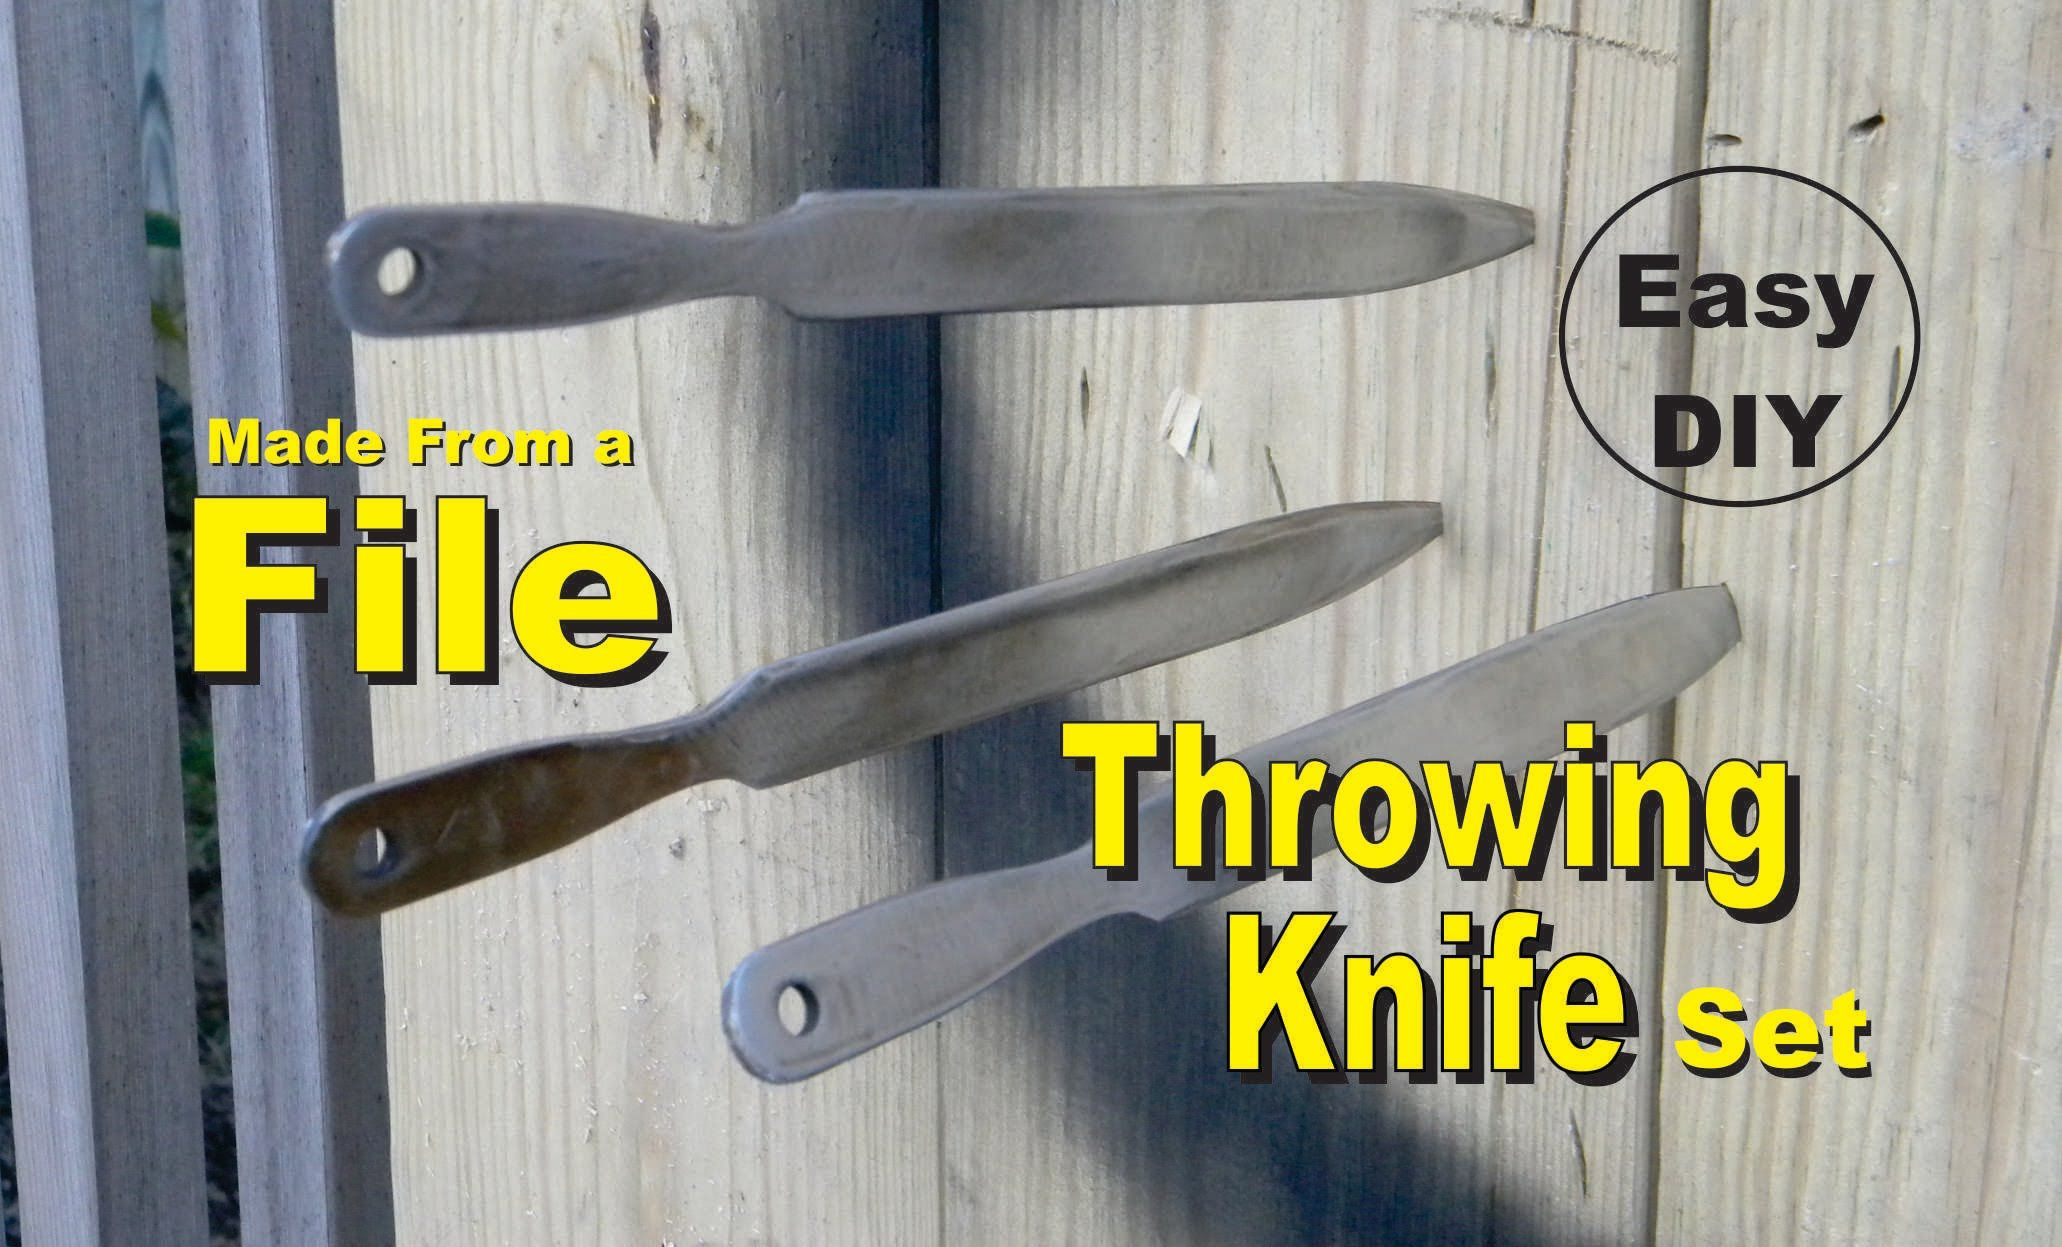 How to make a throwing knife from a file easy diy project